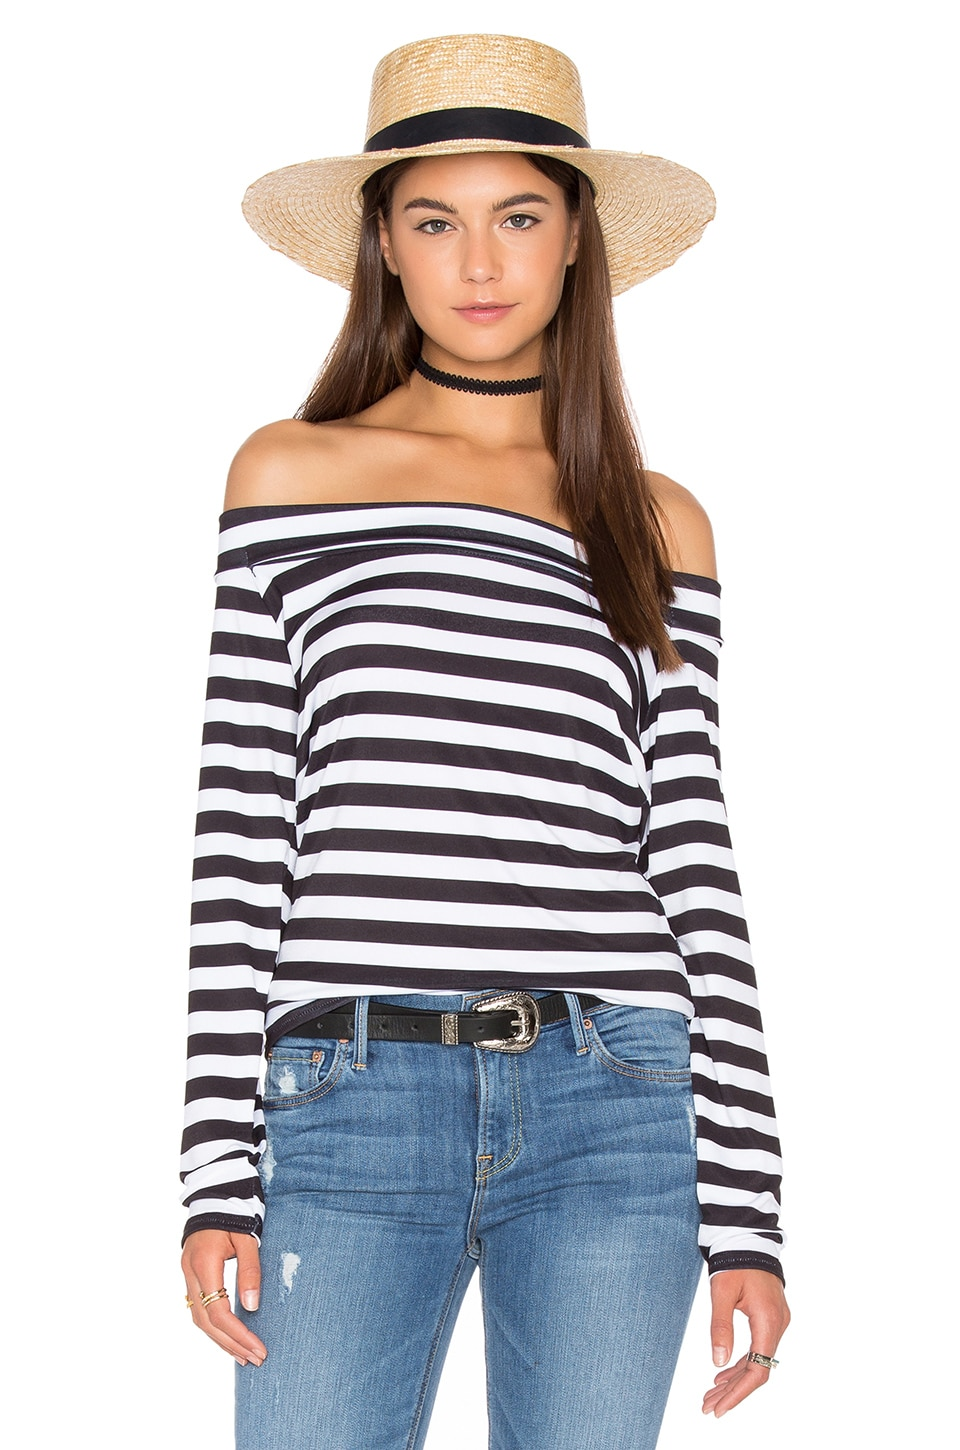 Motel Bry Top in BW Stripe